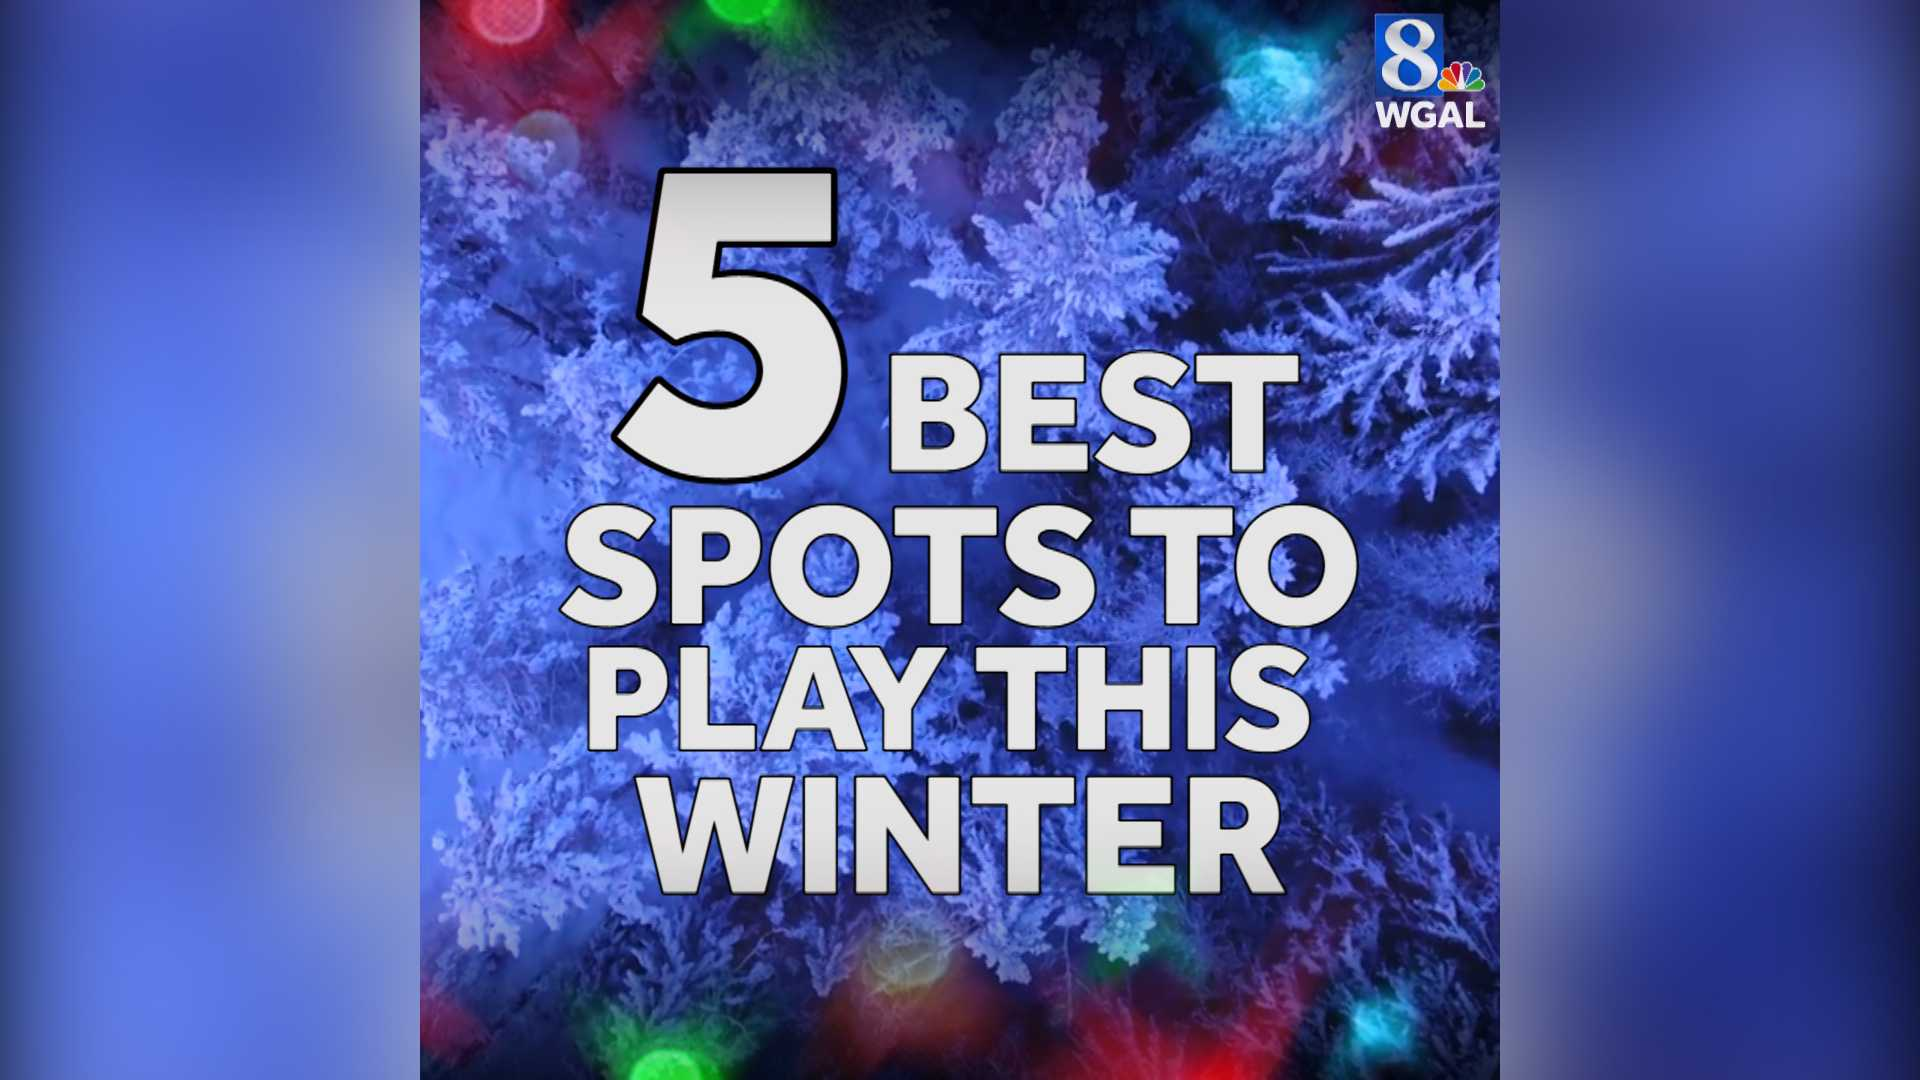 5 Best Spots to Play this Winter